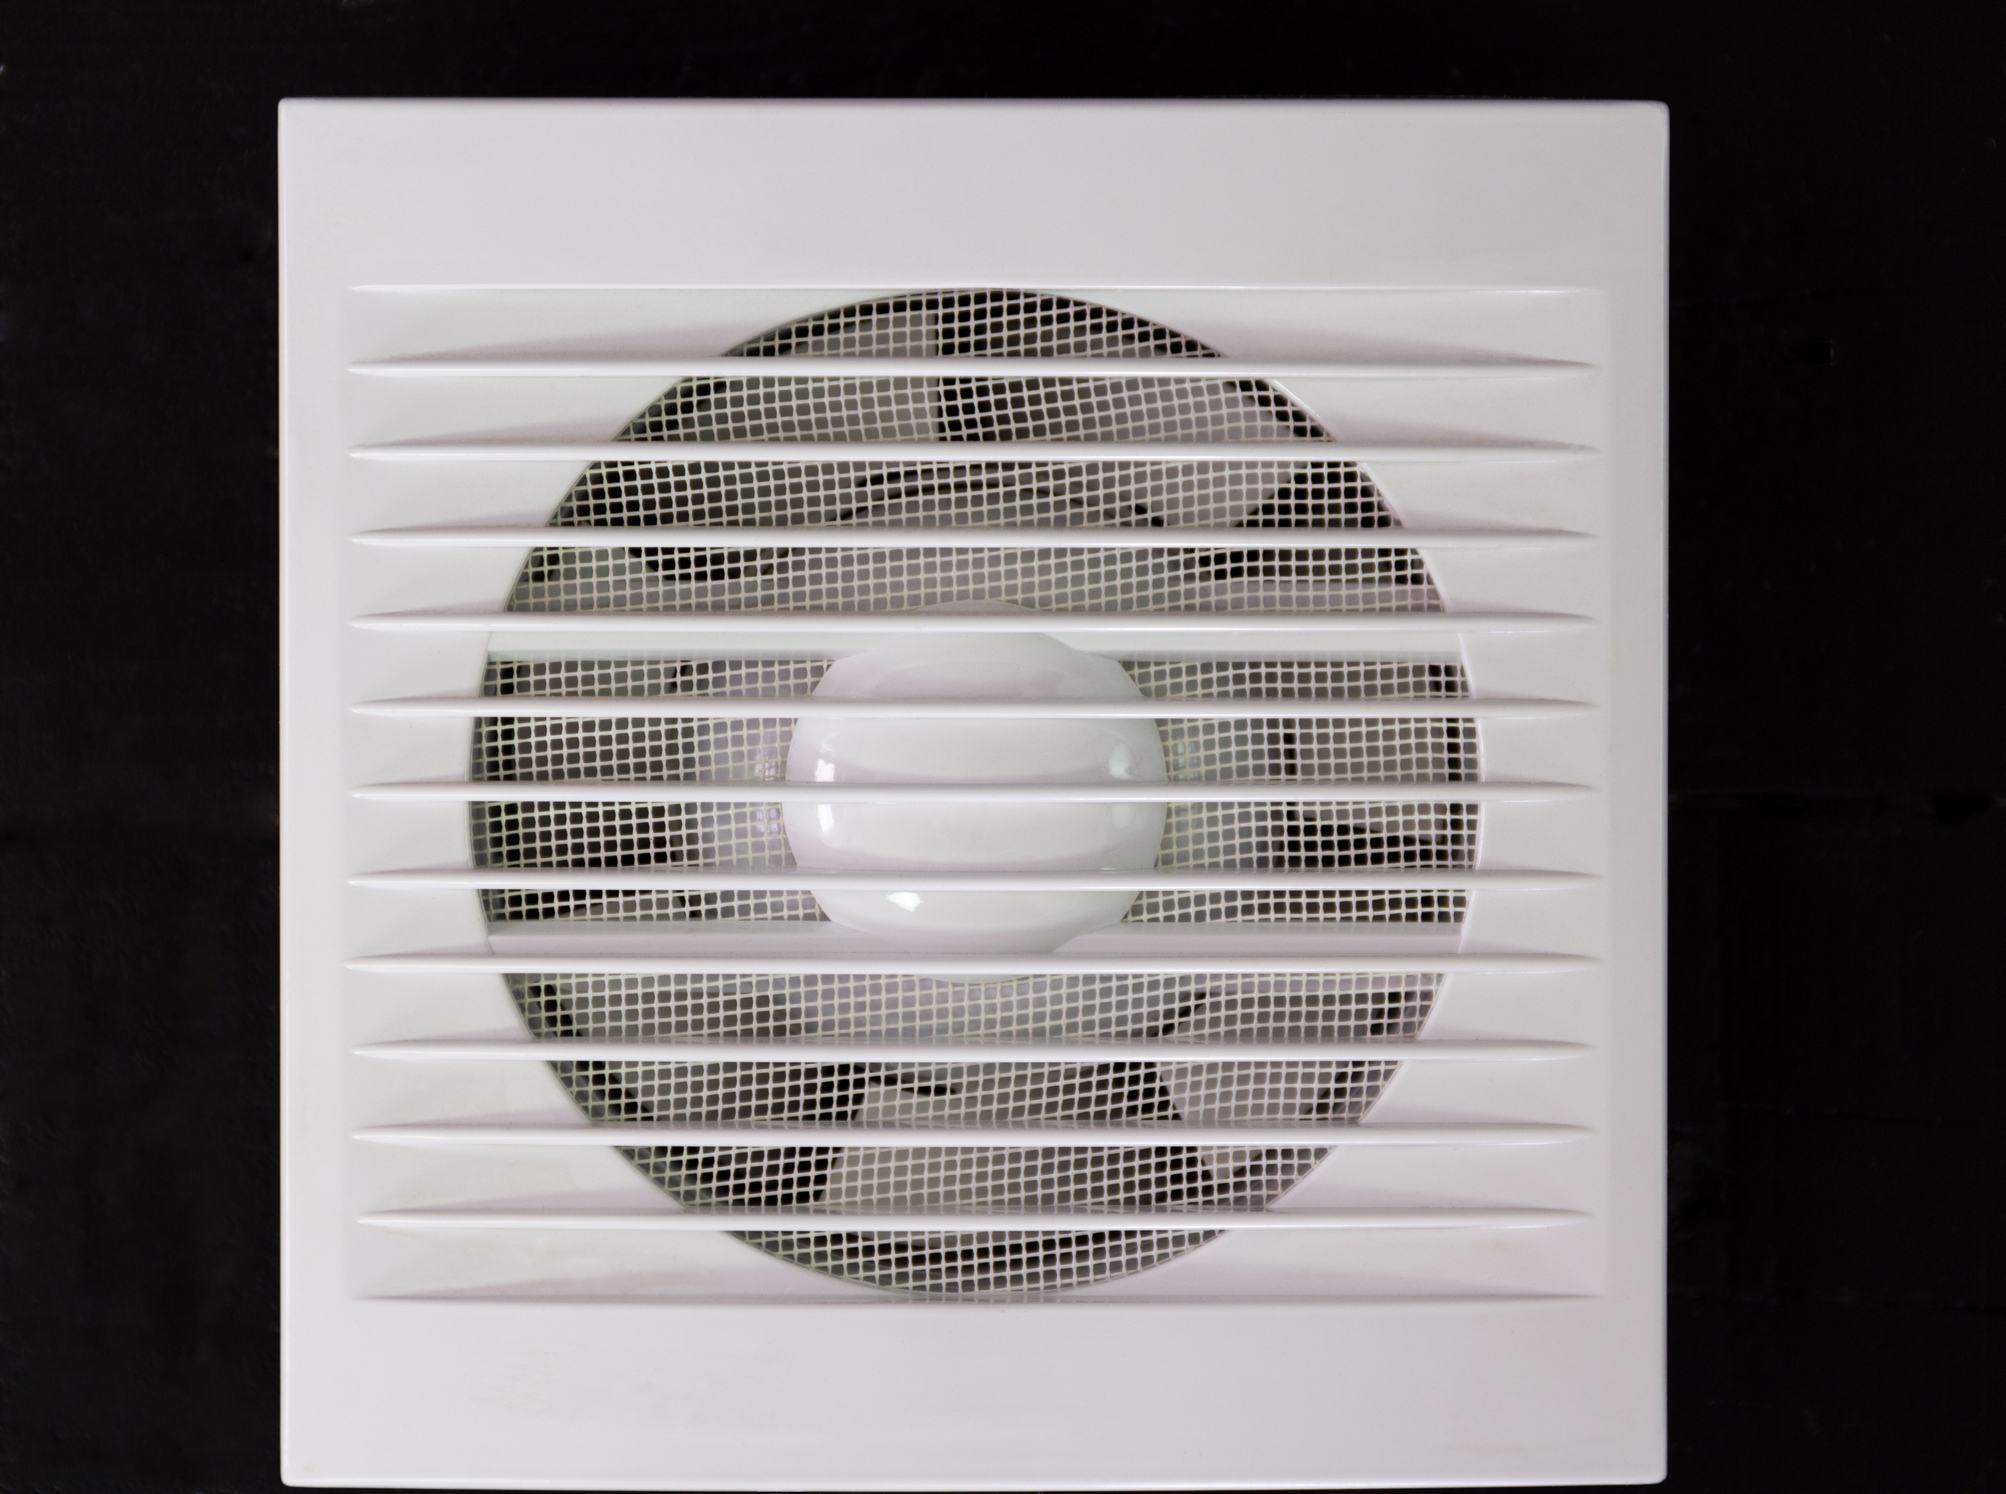 Wall electric extractor fan for bathroom. Closeup